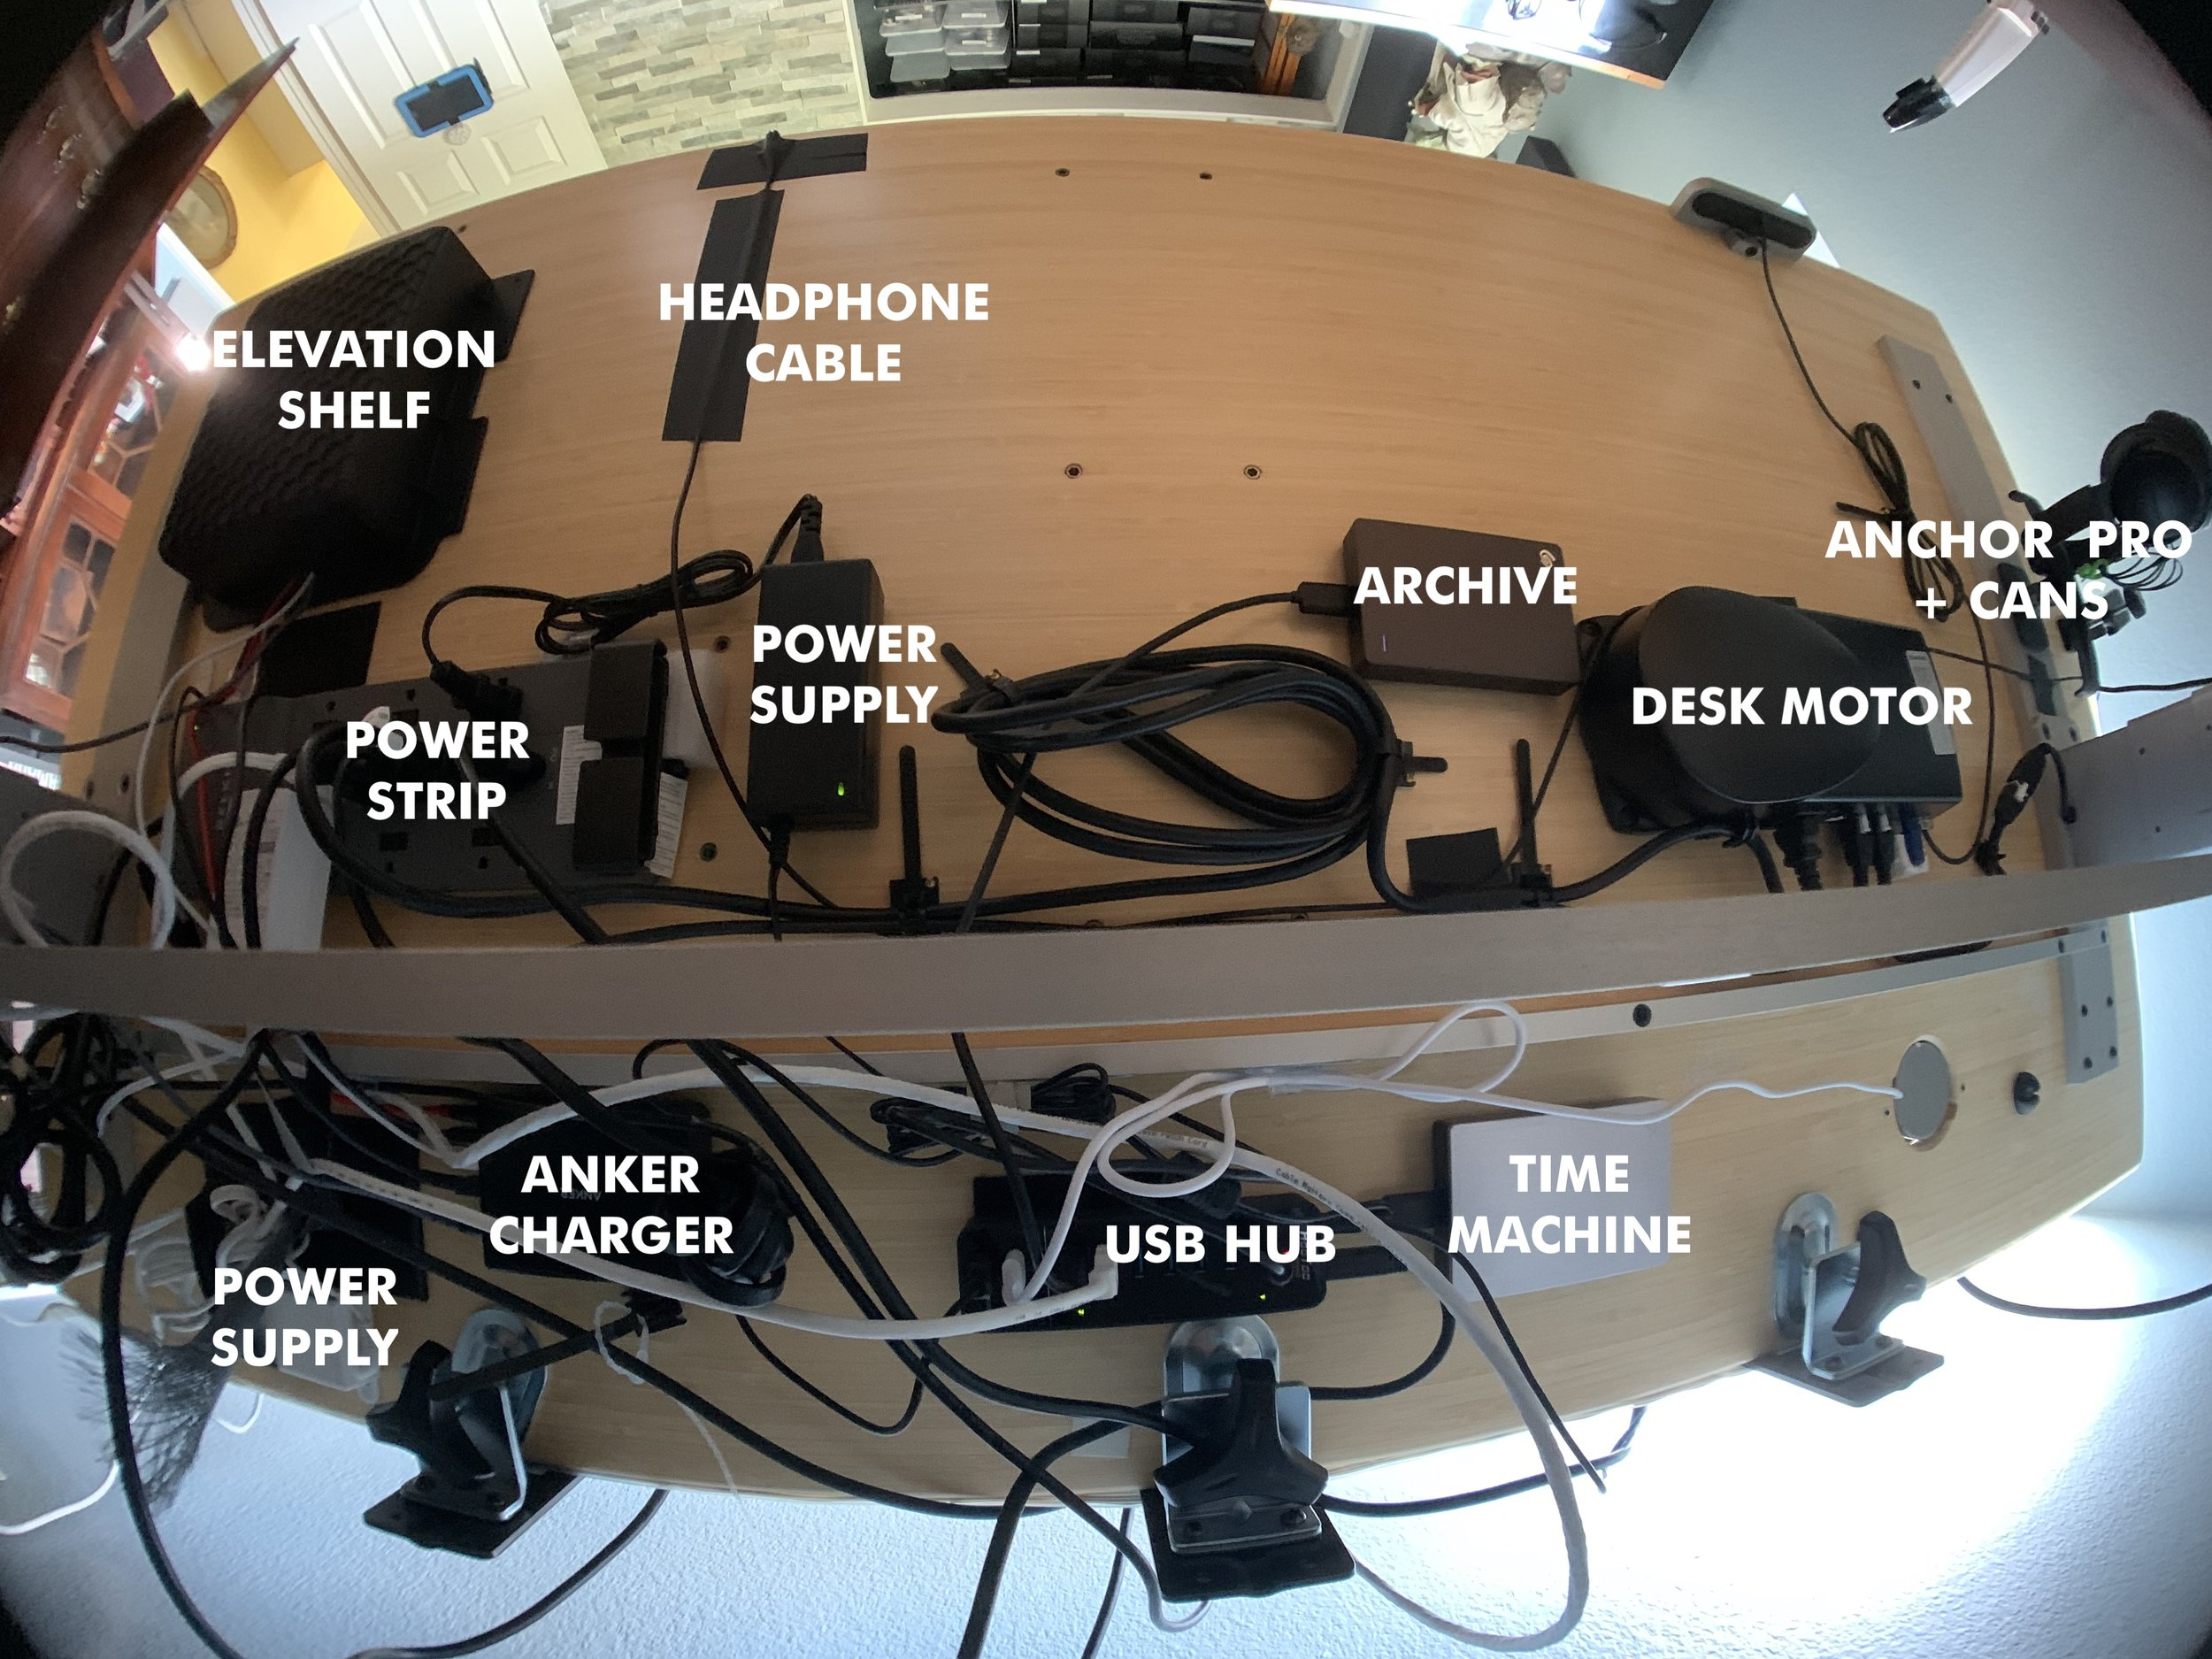 Shot with a fisheye lens. Click to enlarge.